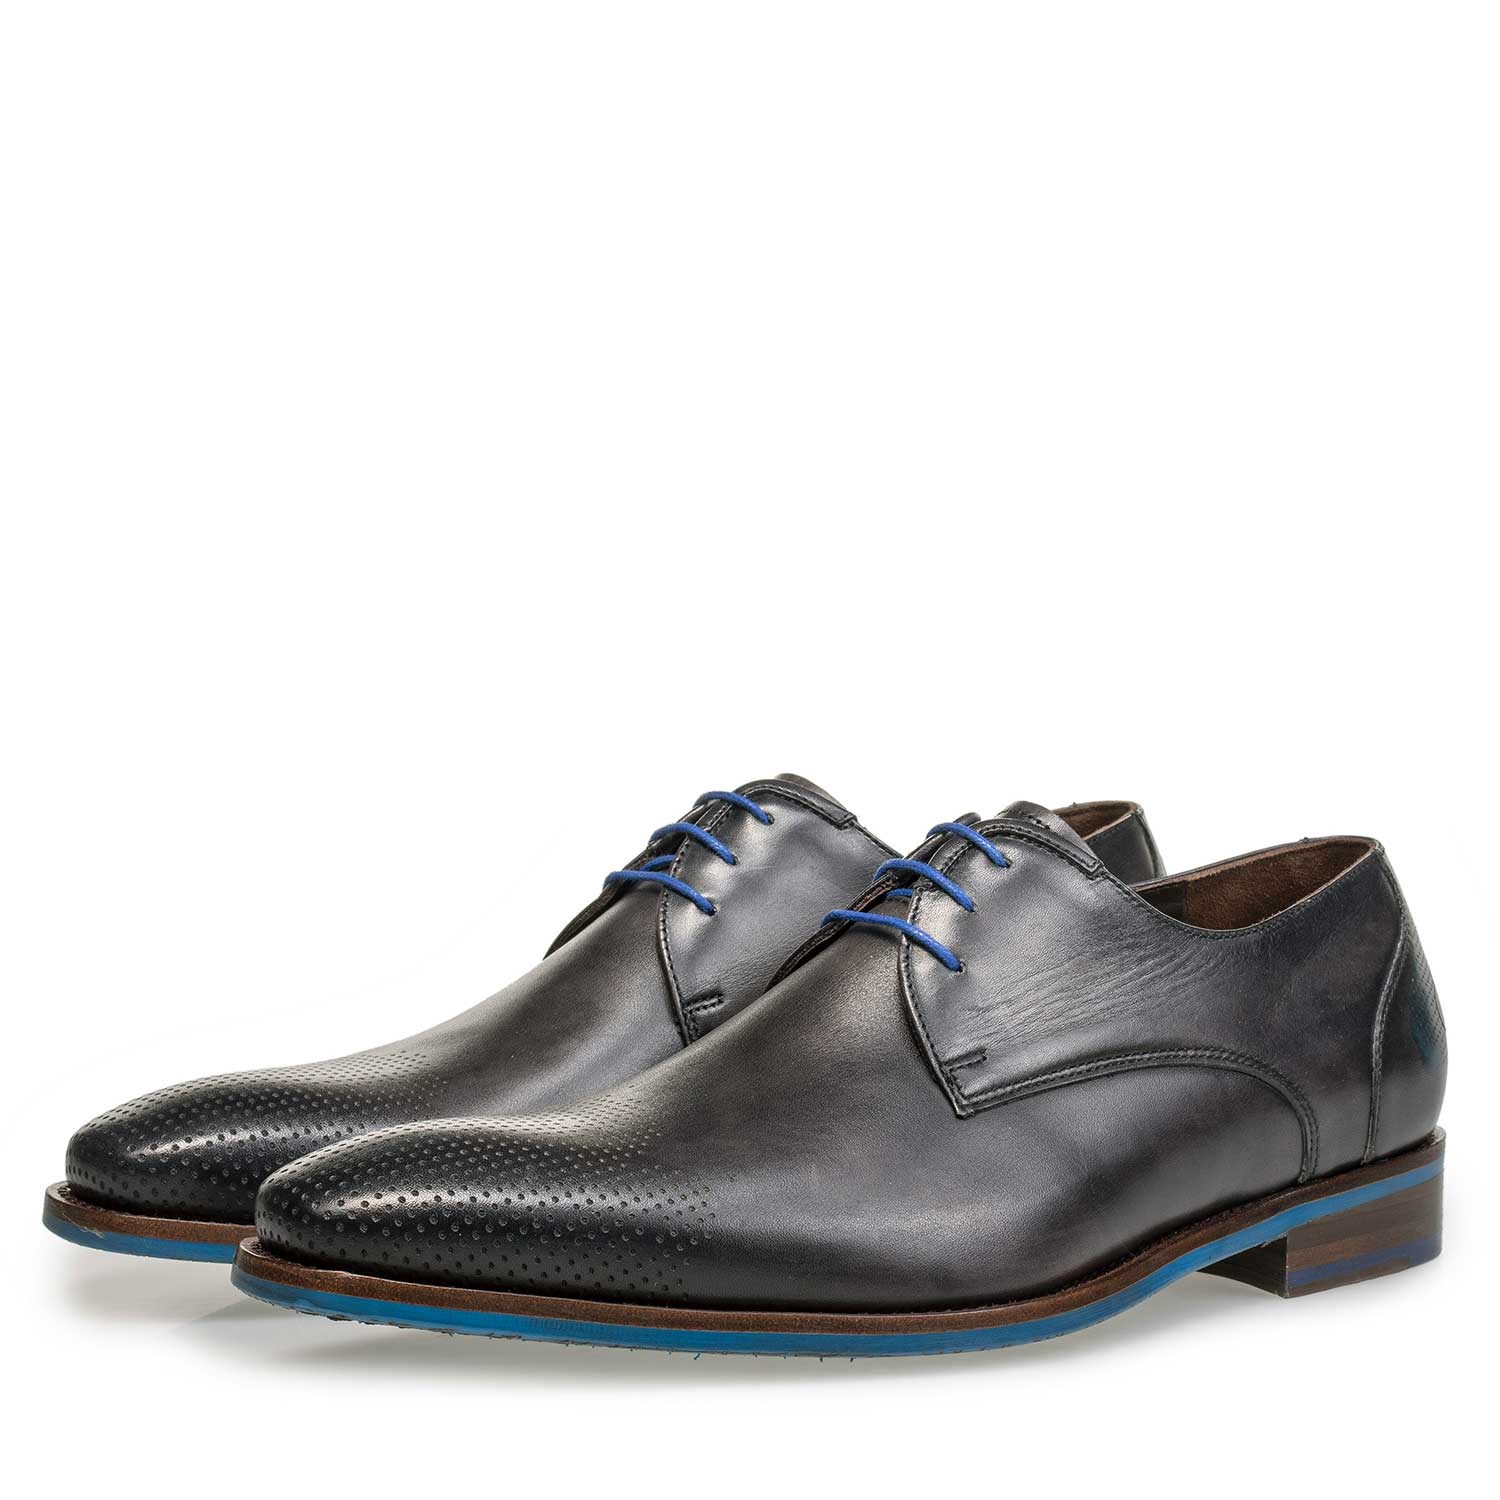 18193/02 - Grey patterned calf's leather lace shoe